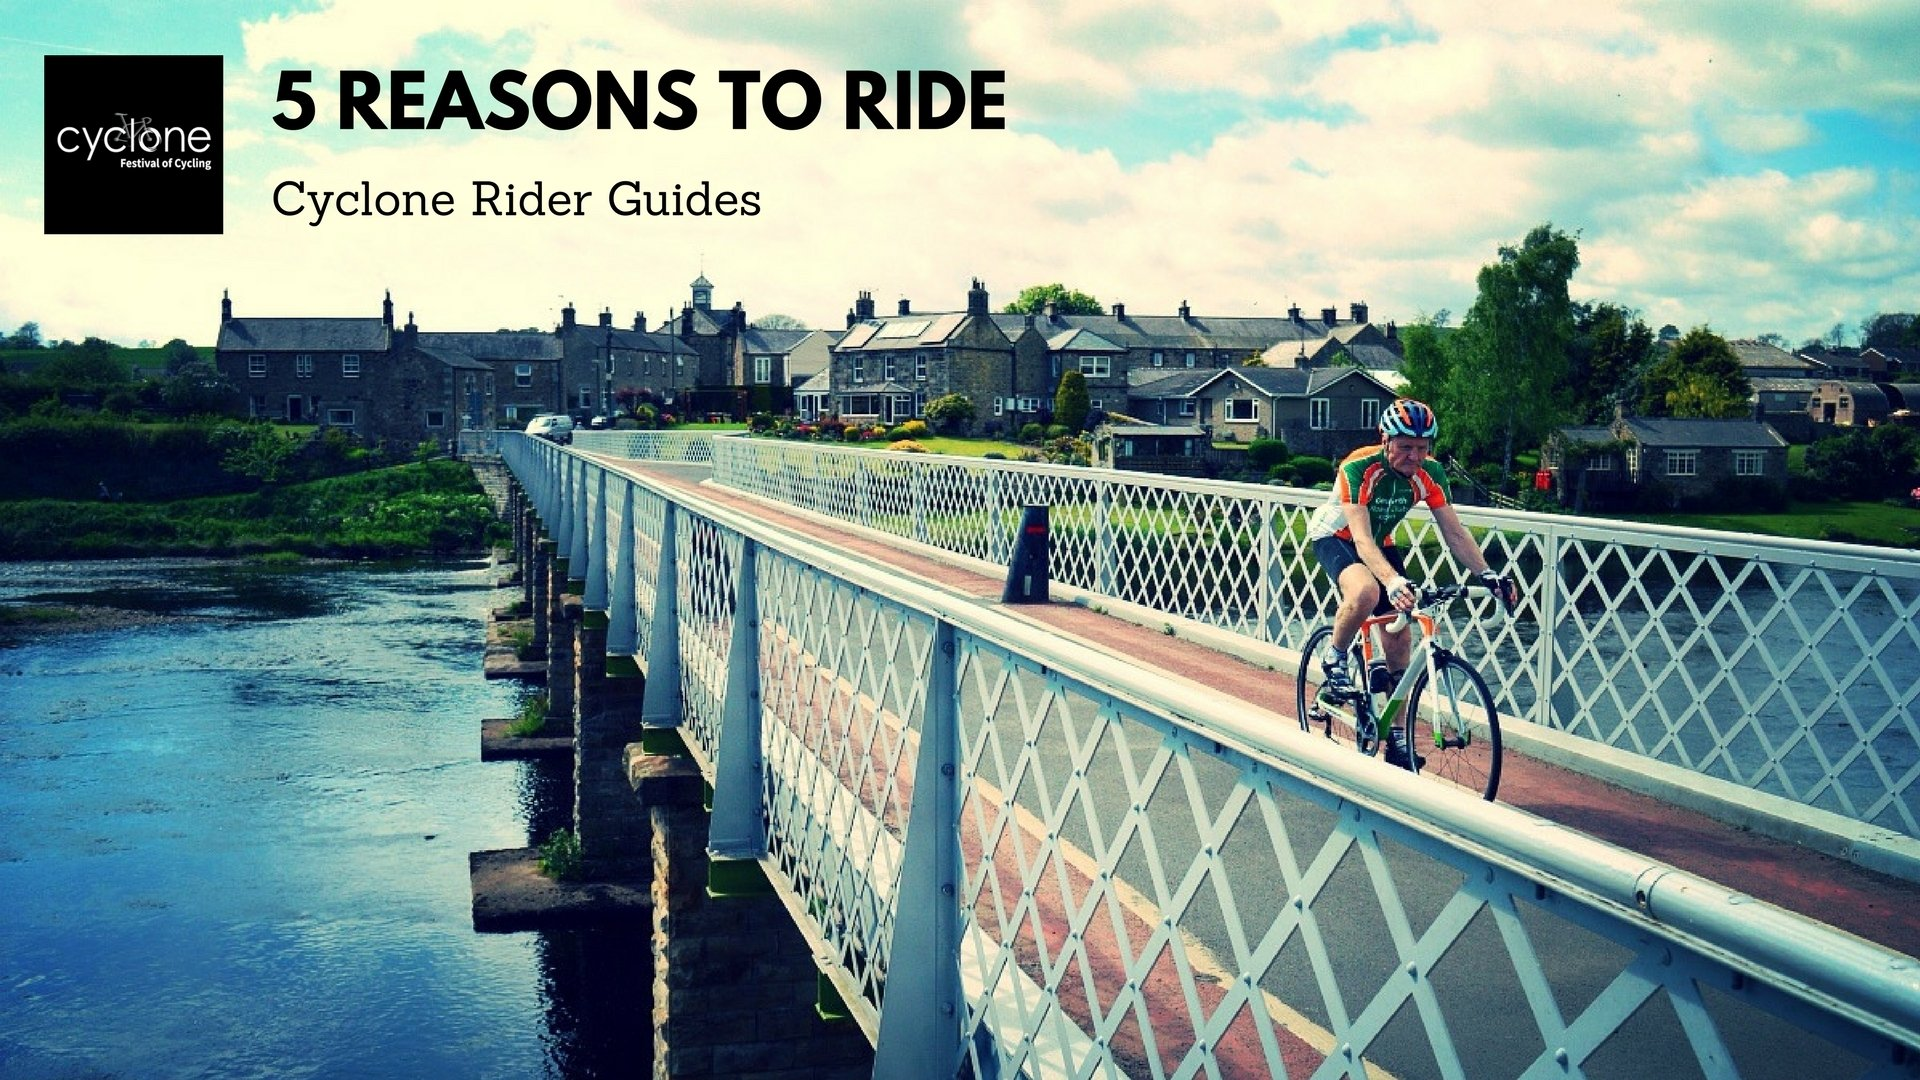 5 Reasons to Ride